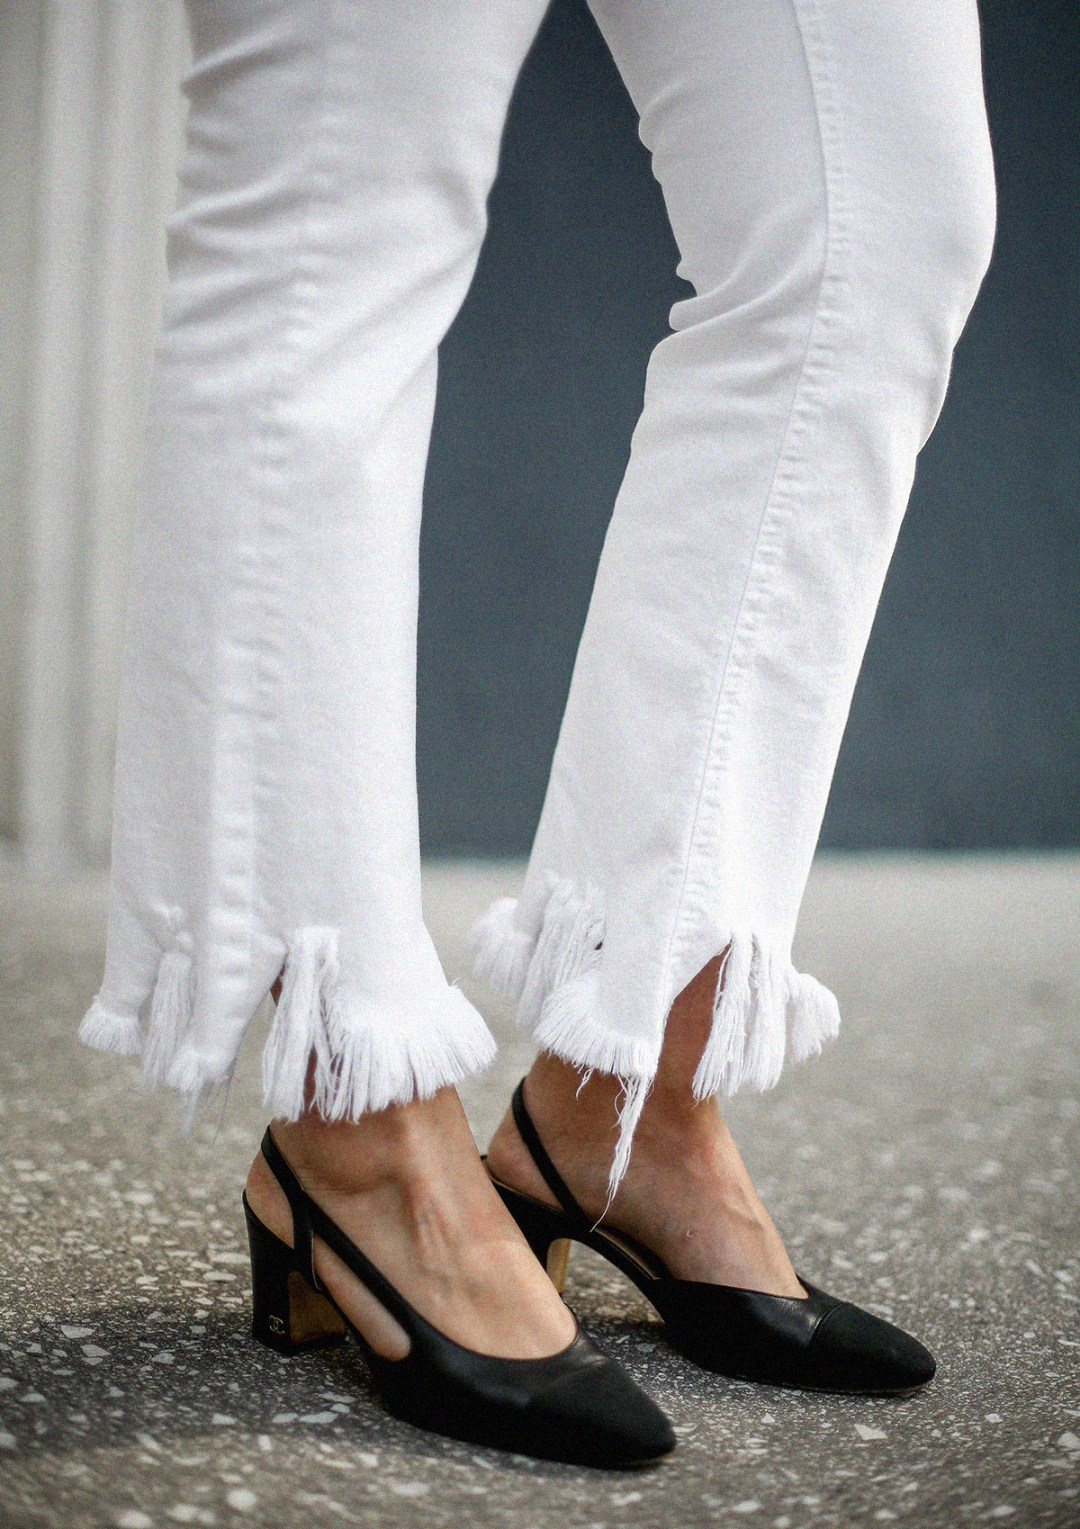 flower-top-zara-frayed-white-jeans-chanel-slingback-jw-anderson-bag-streetstyle6